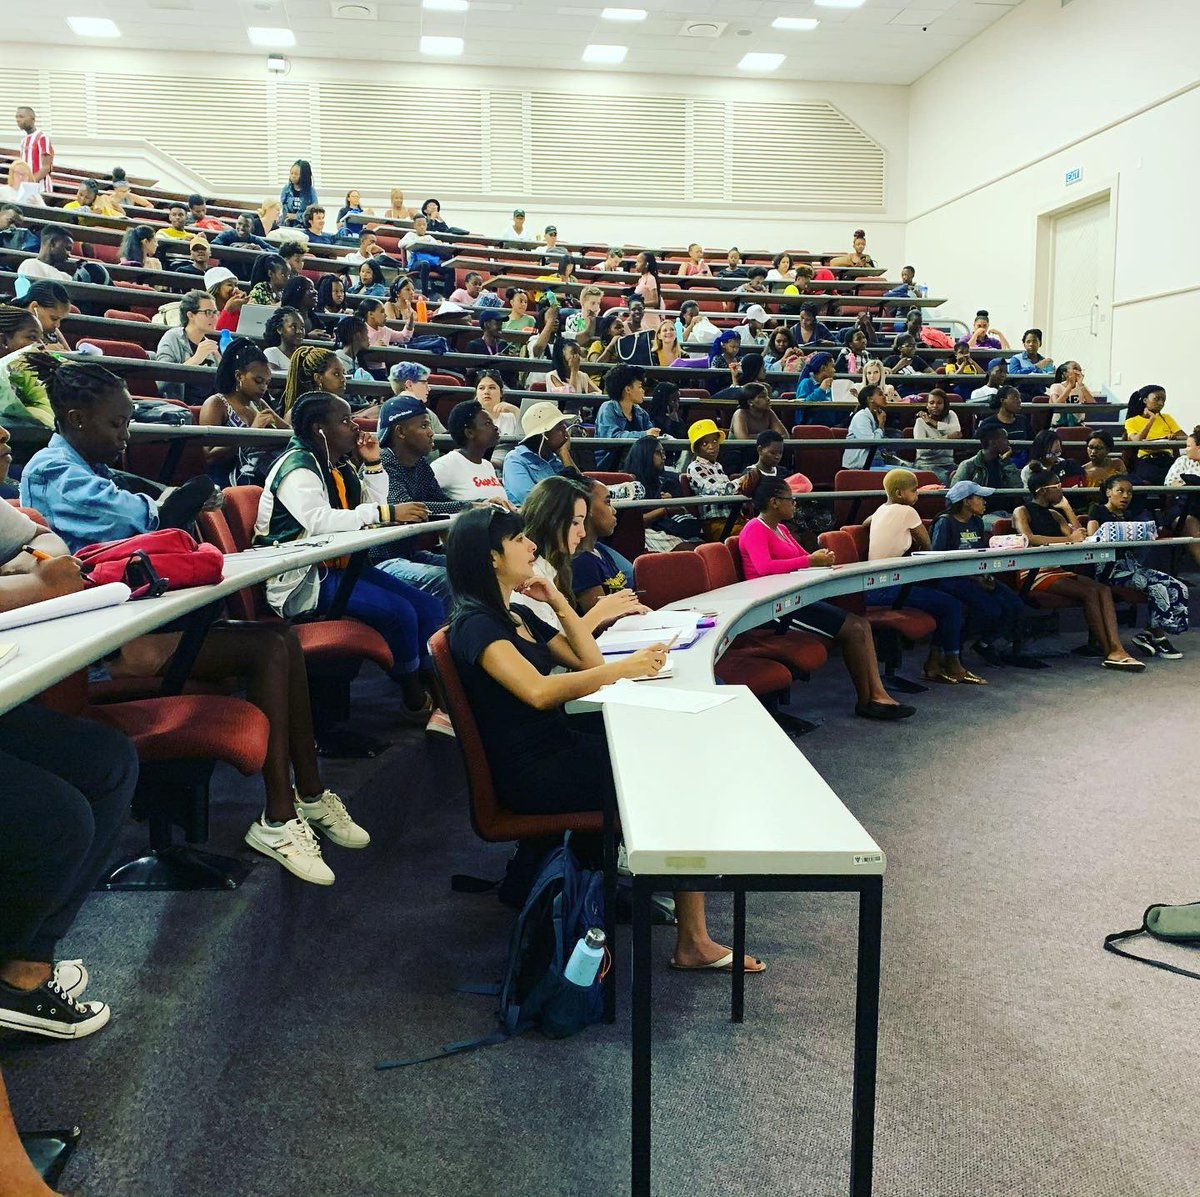 All #classes are in full swing over the past two weeks. Our #students are busy walking the streets of #Makhanda #interviewing, #filming and taking #photographs. Our #JMS1 class, which is bigger this year, are busy with a #MappingTheFields module